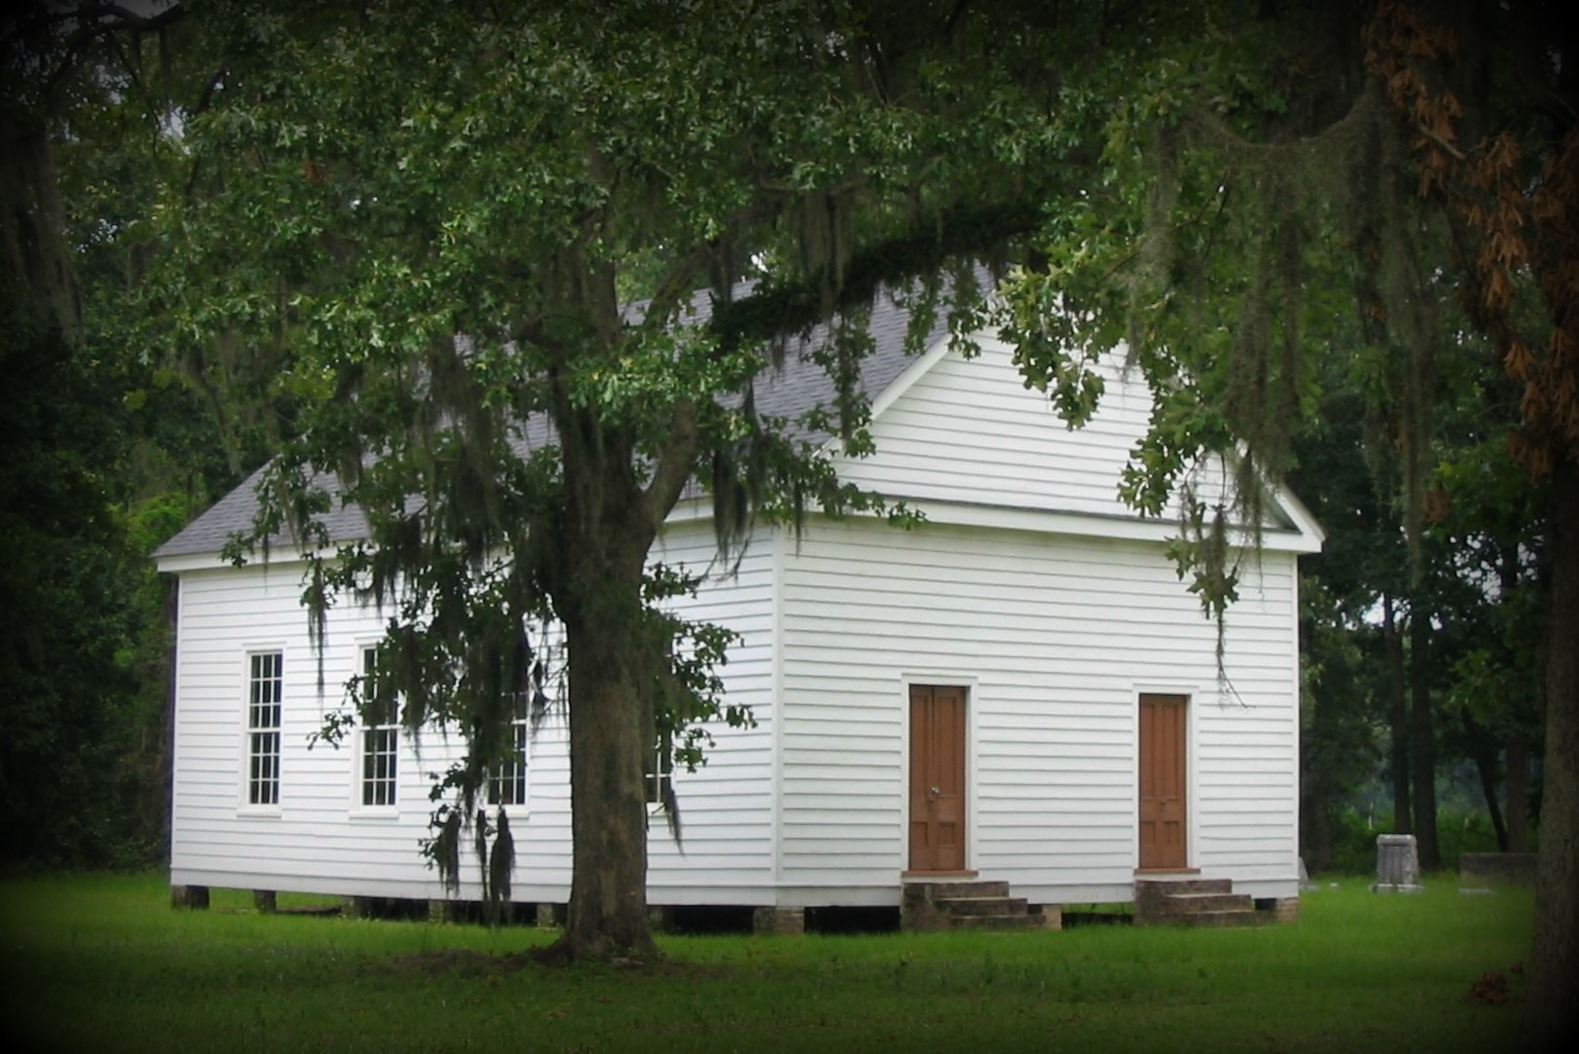 Appleby Methodist Church, built 1840s. St. George, South Carolina, founded by the ancestors of this blog's author.